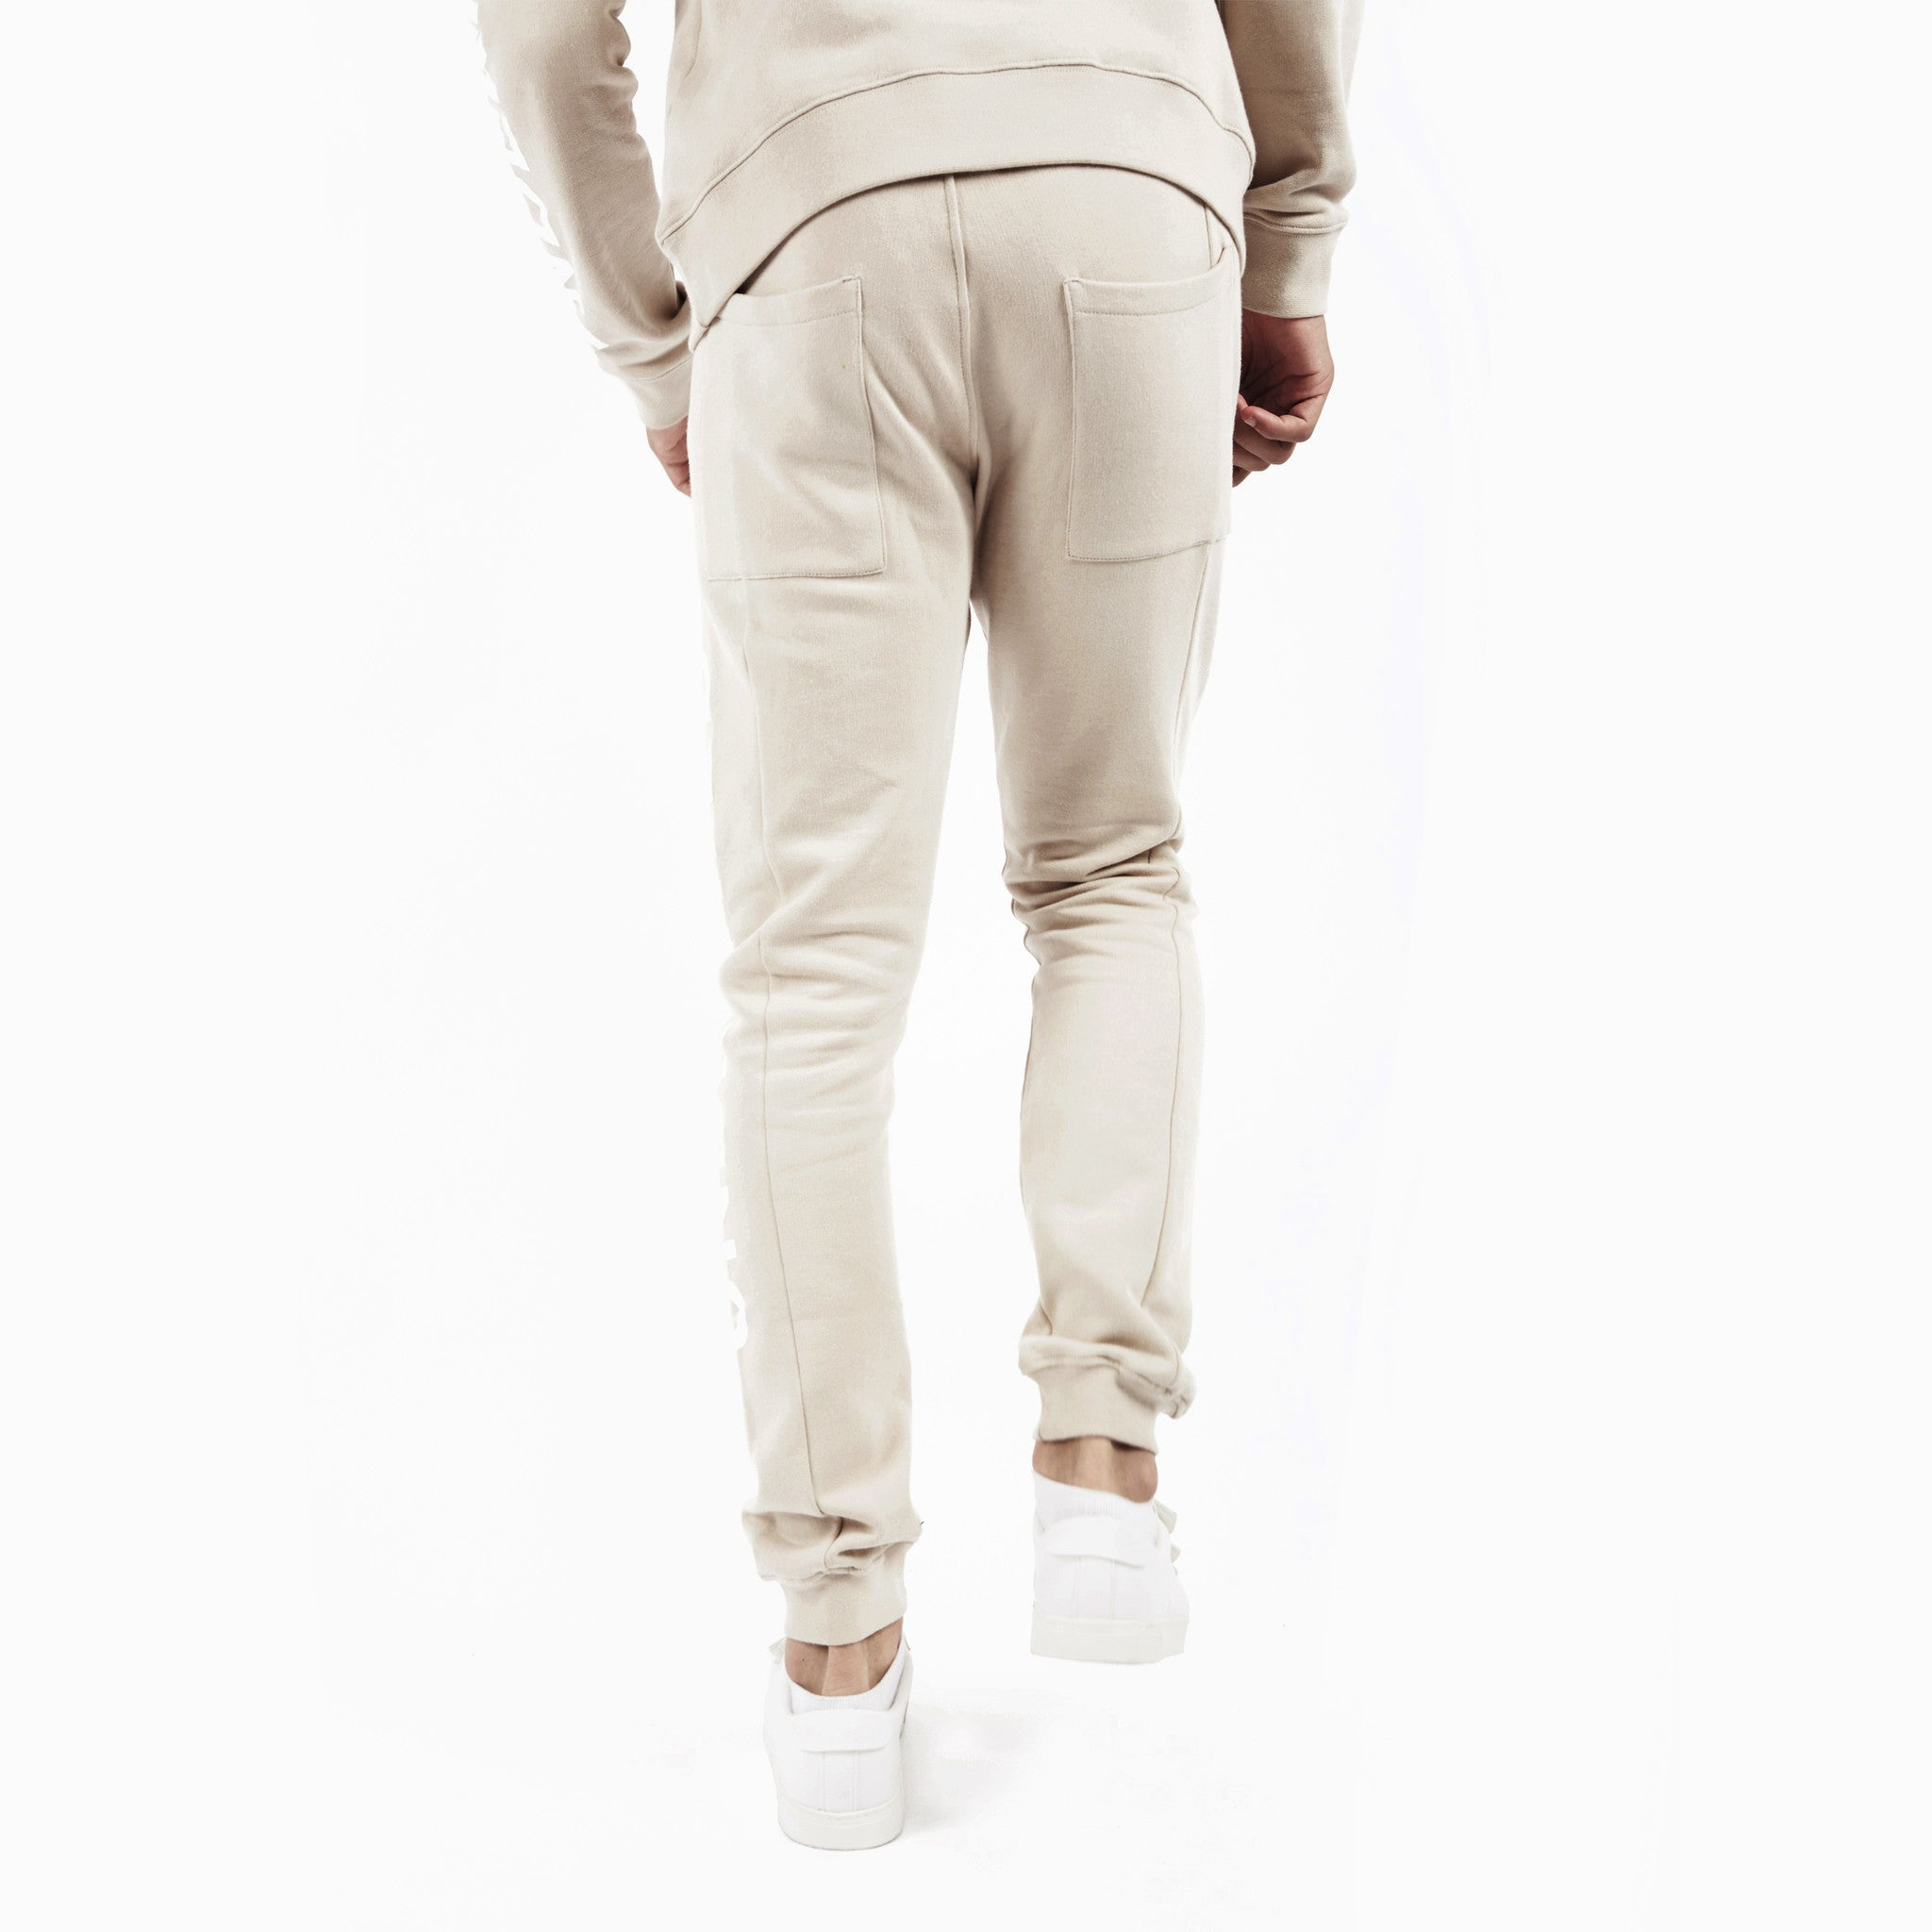 TR351 Essential Printed Joggers - Beige - underated london - underatedco - 5